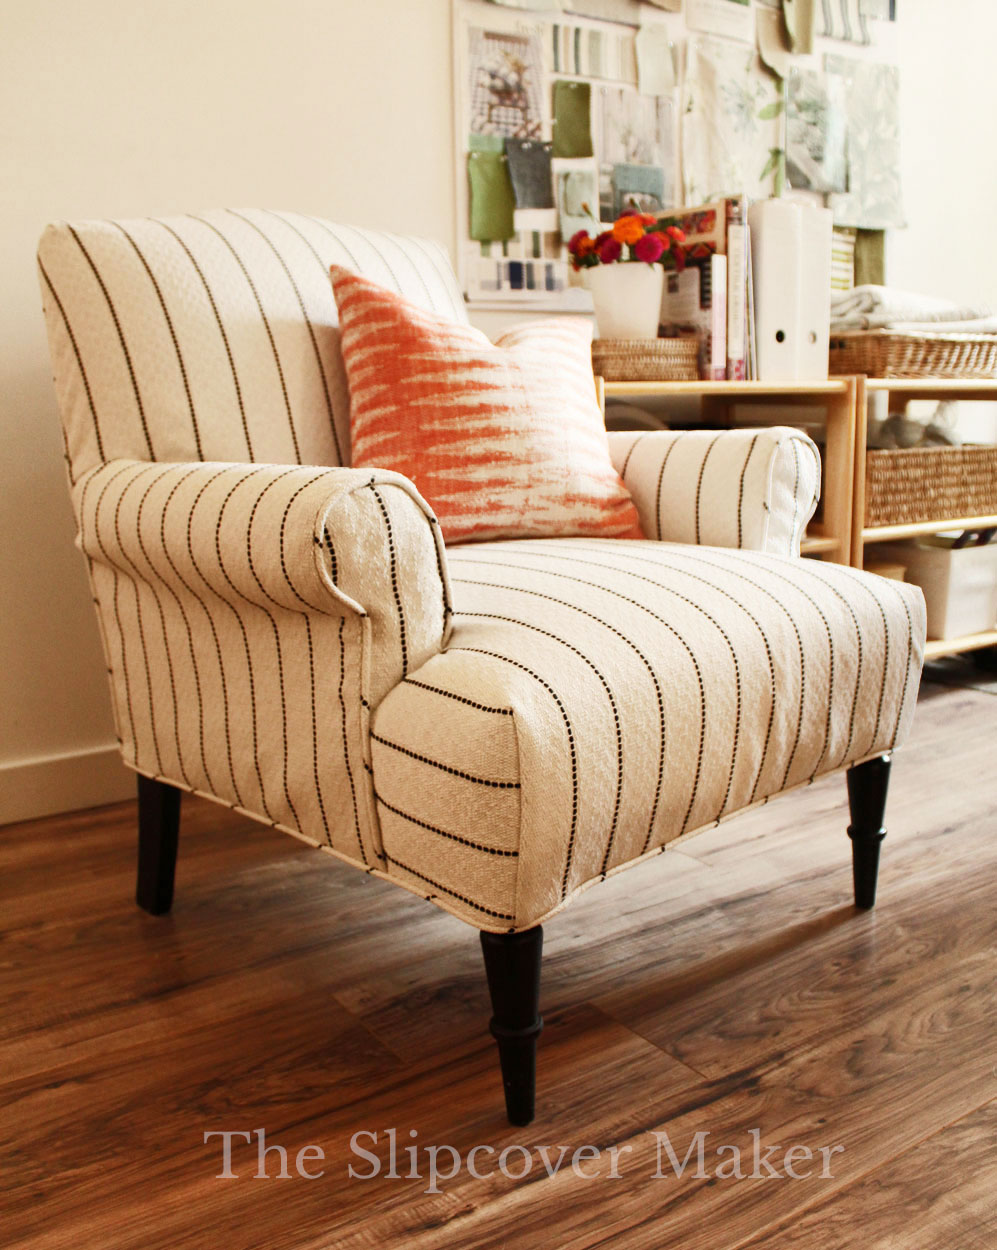 20 Tips for Slipcover Success